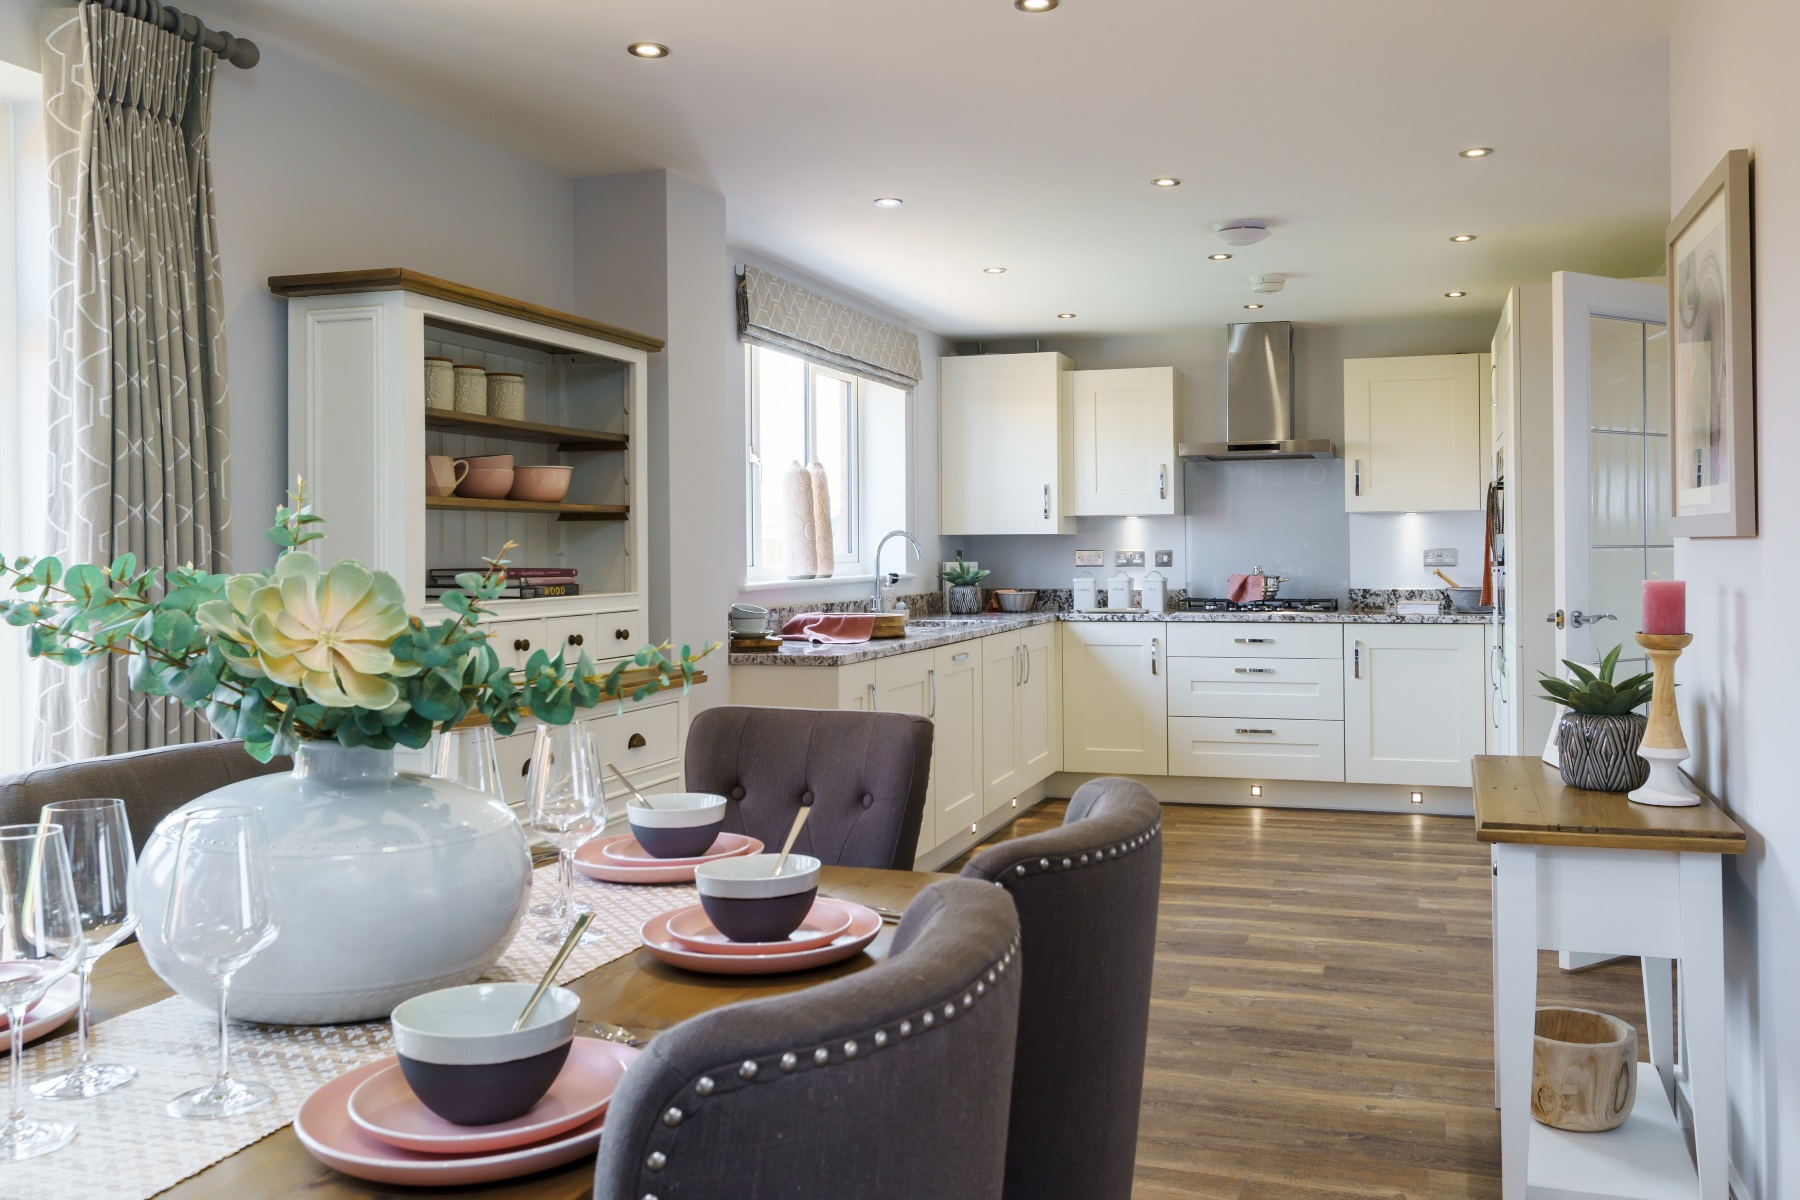 TW Exeter - Hele Park - Shelford example kitchen 2